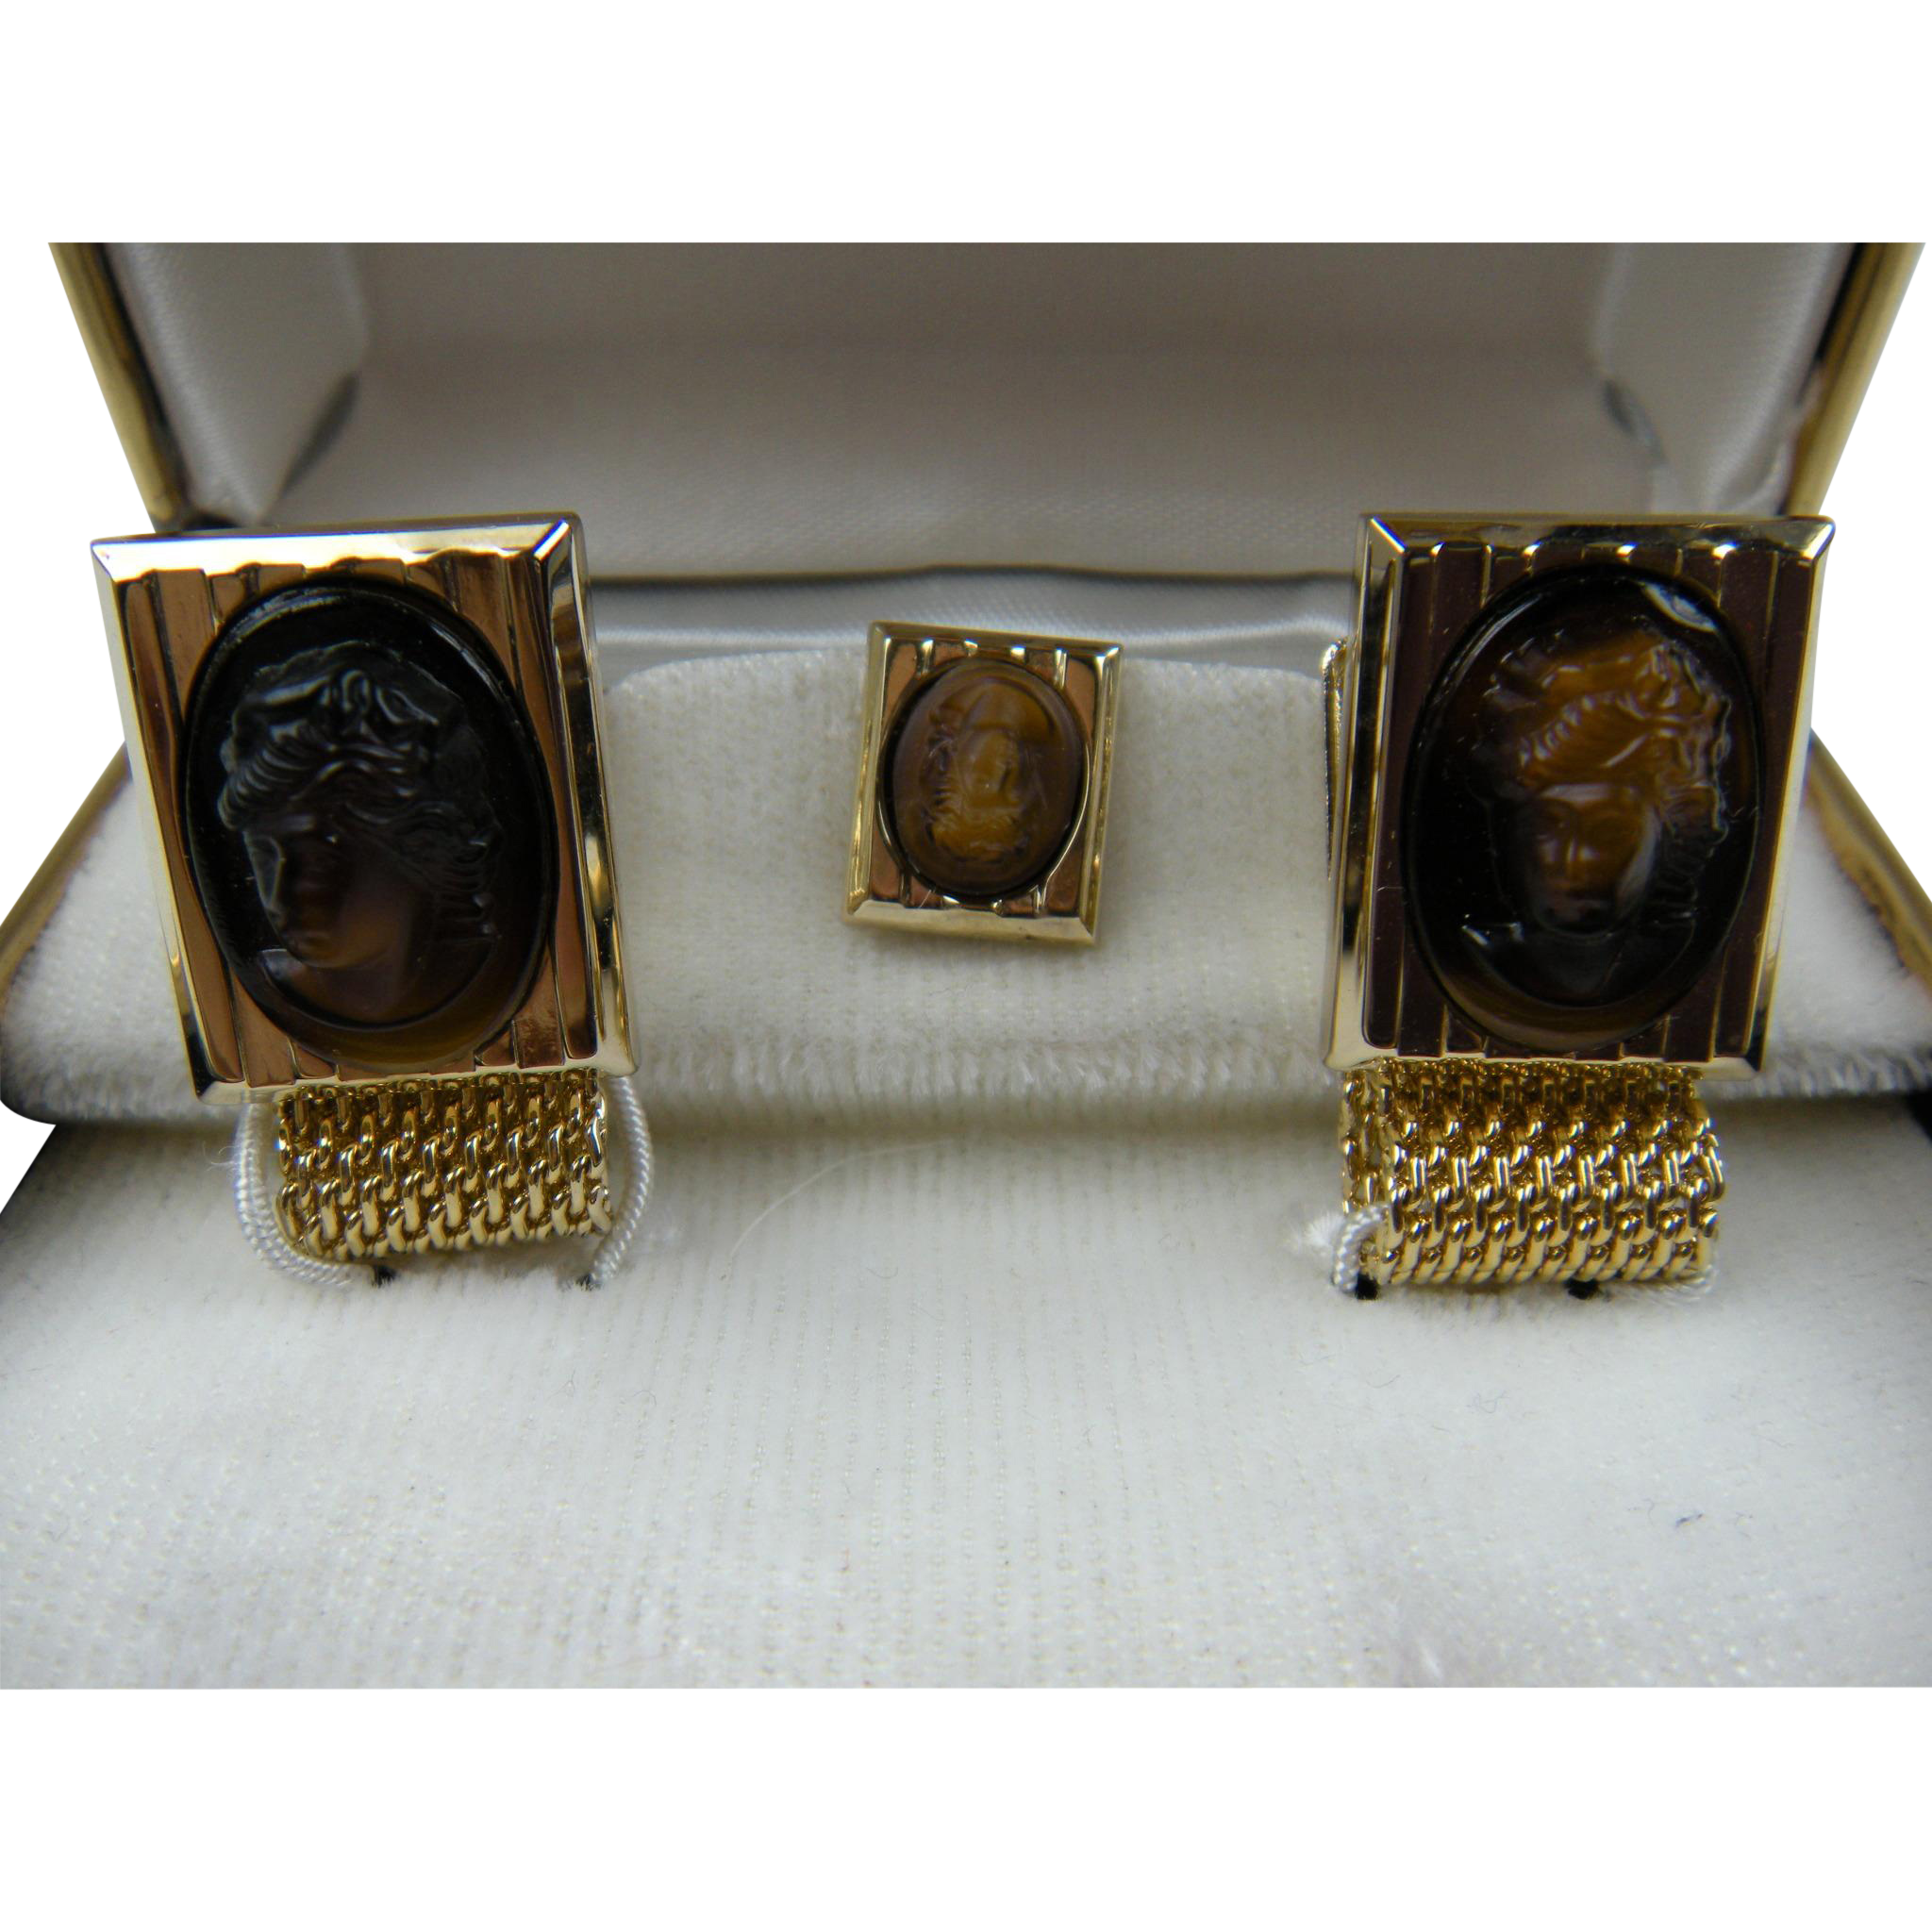 Signed Imitation Cameo Cuff Links and Tie Tack in Original Box